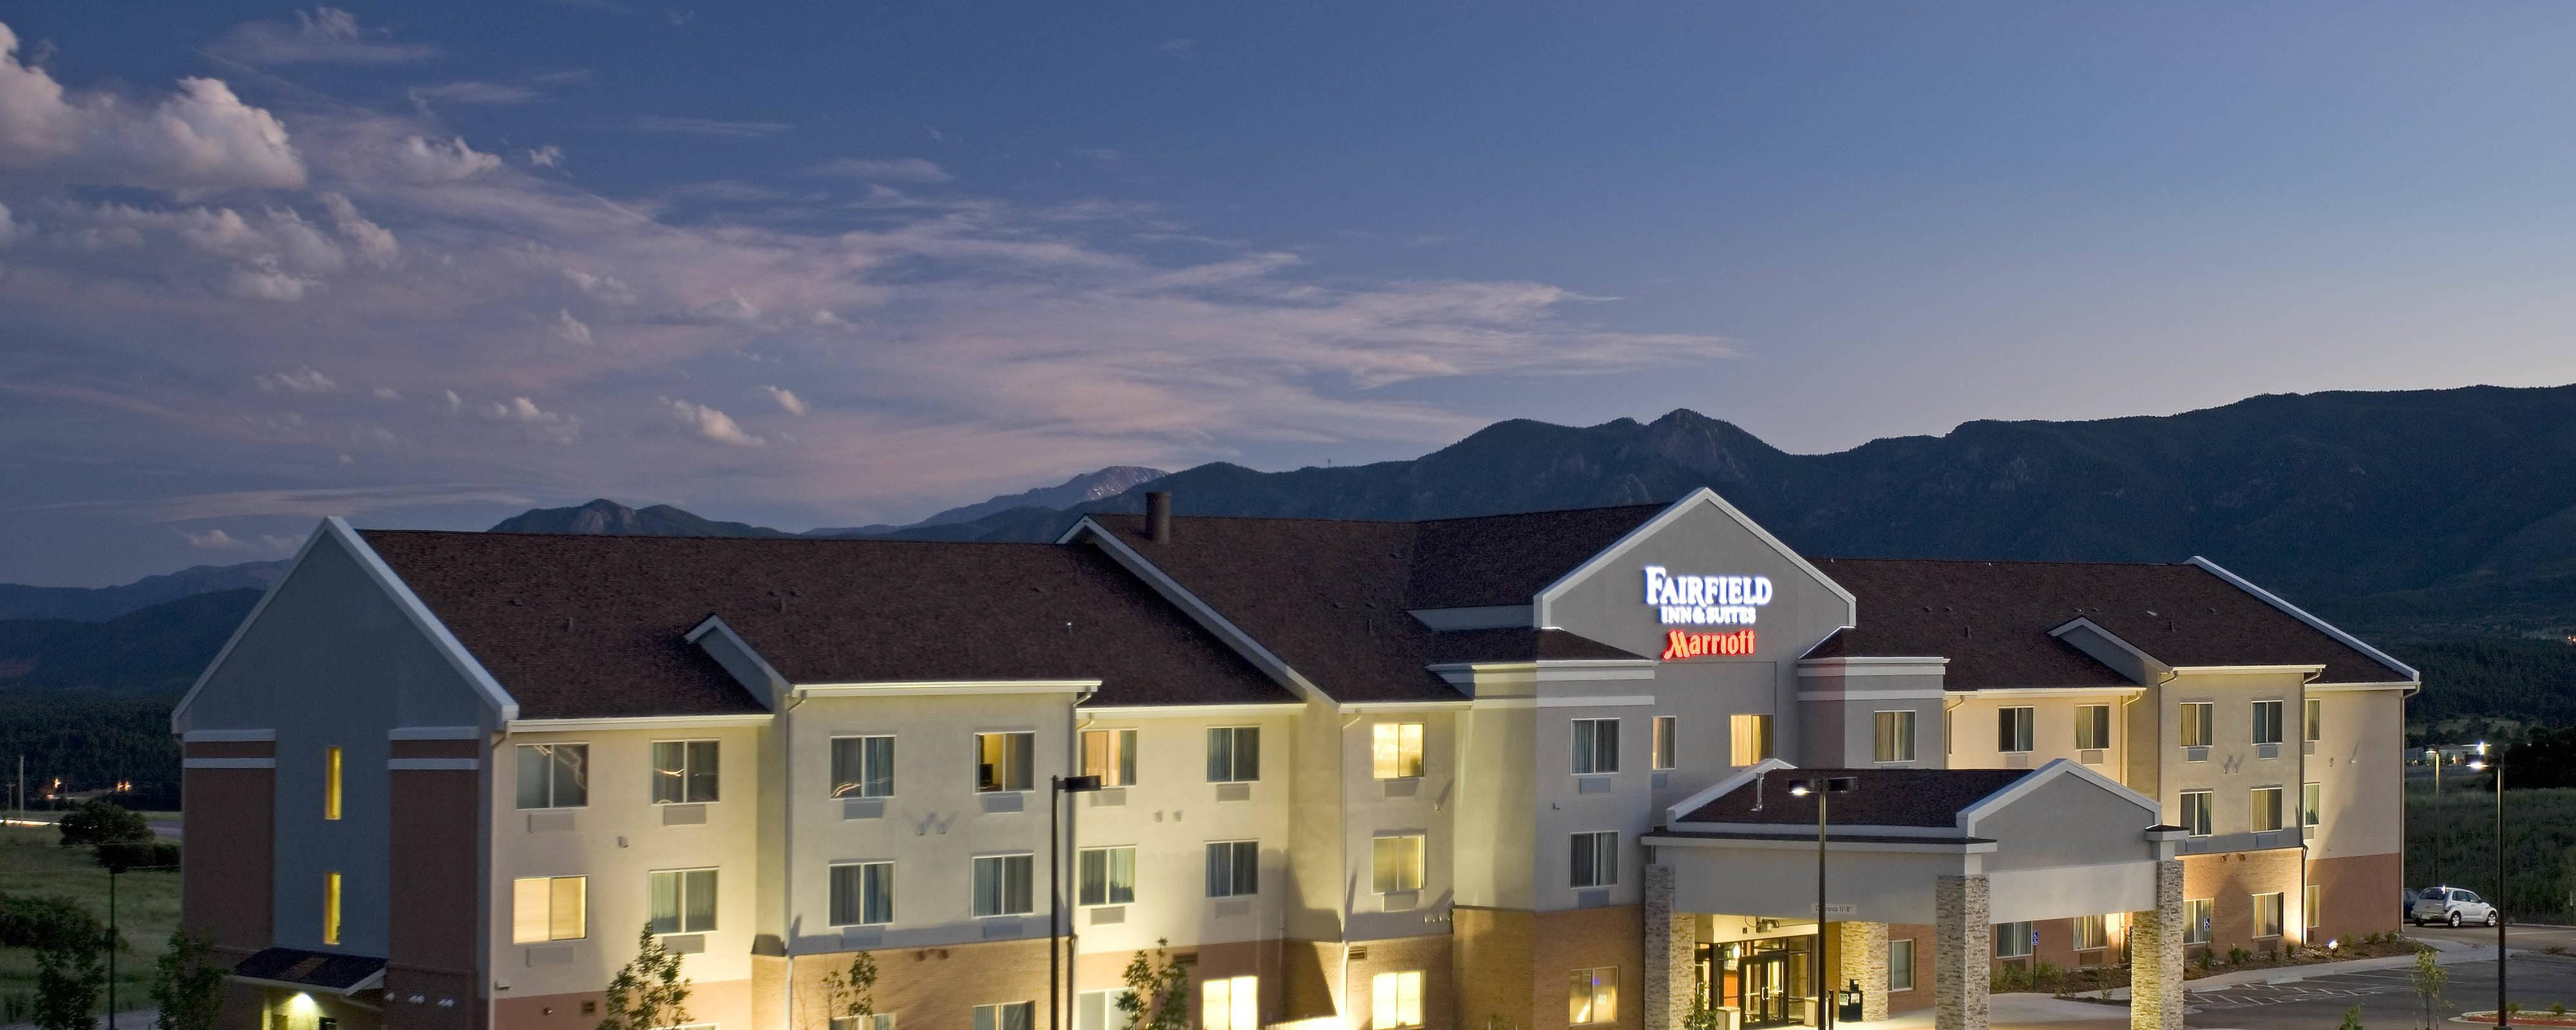 Colorado Springs Fairfield Inn & Suites